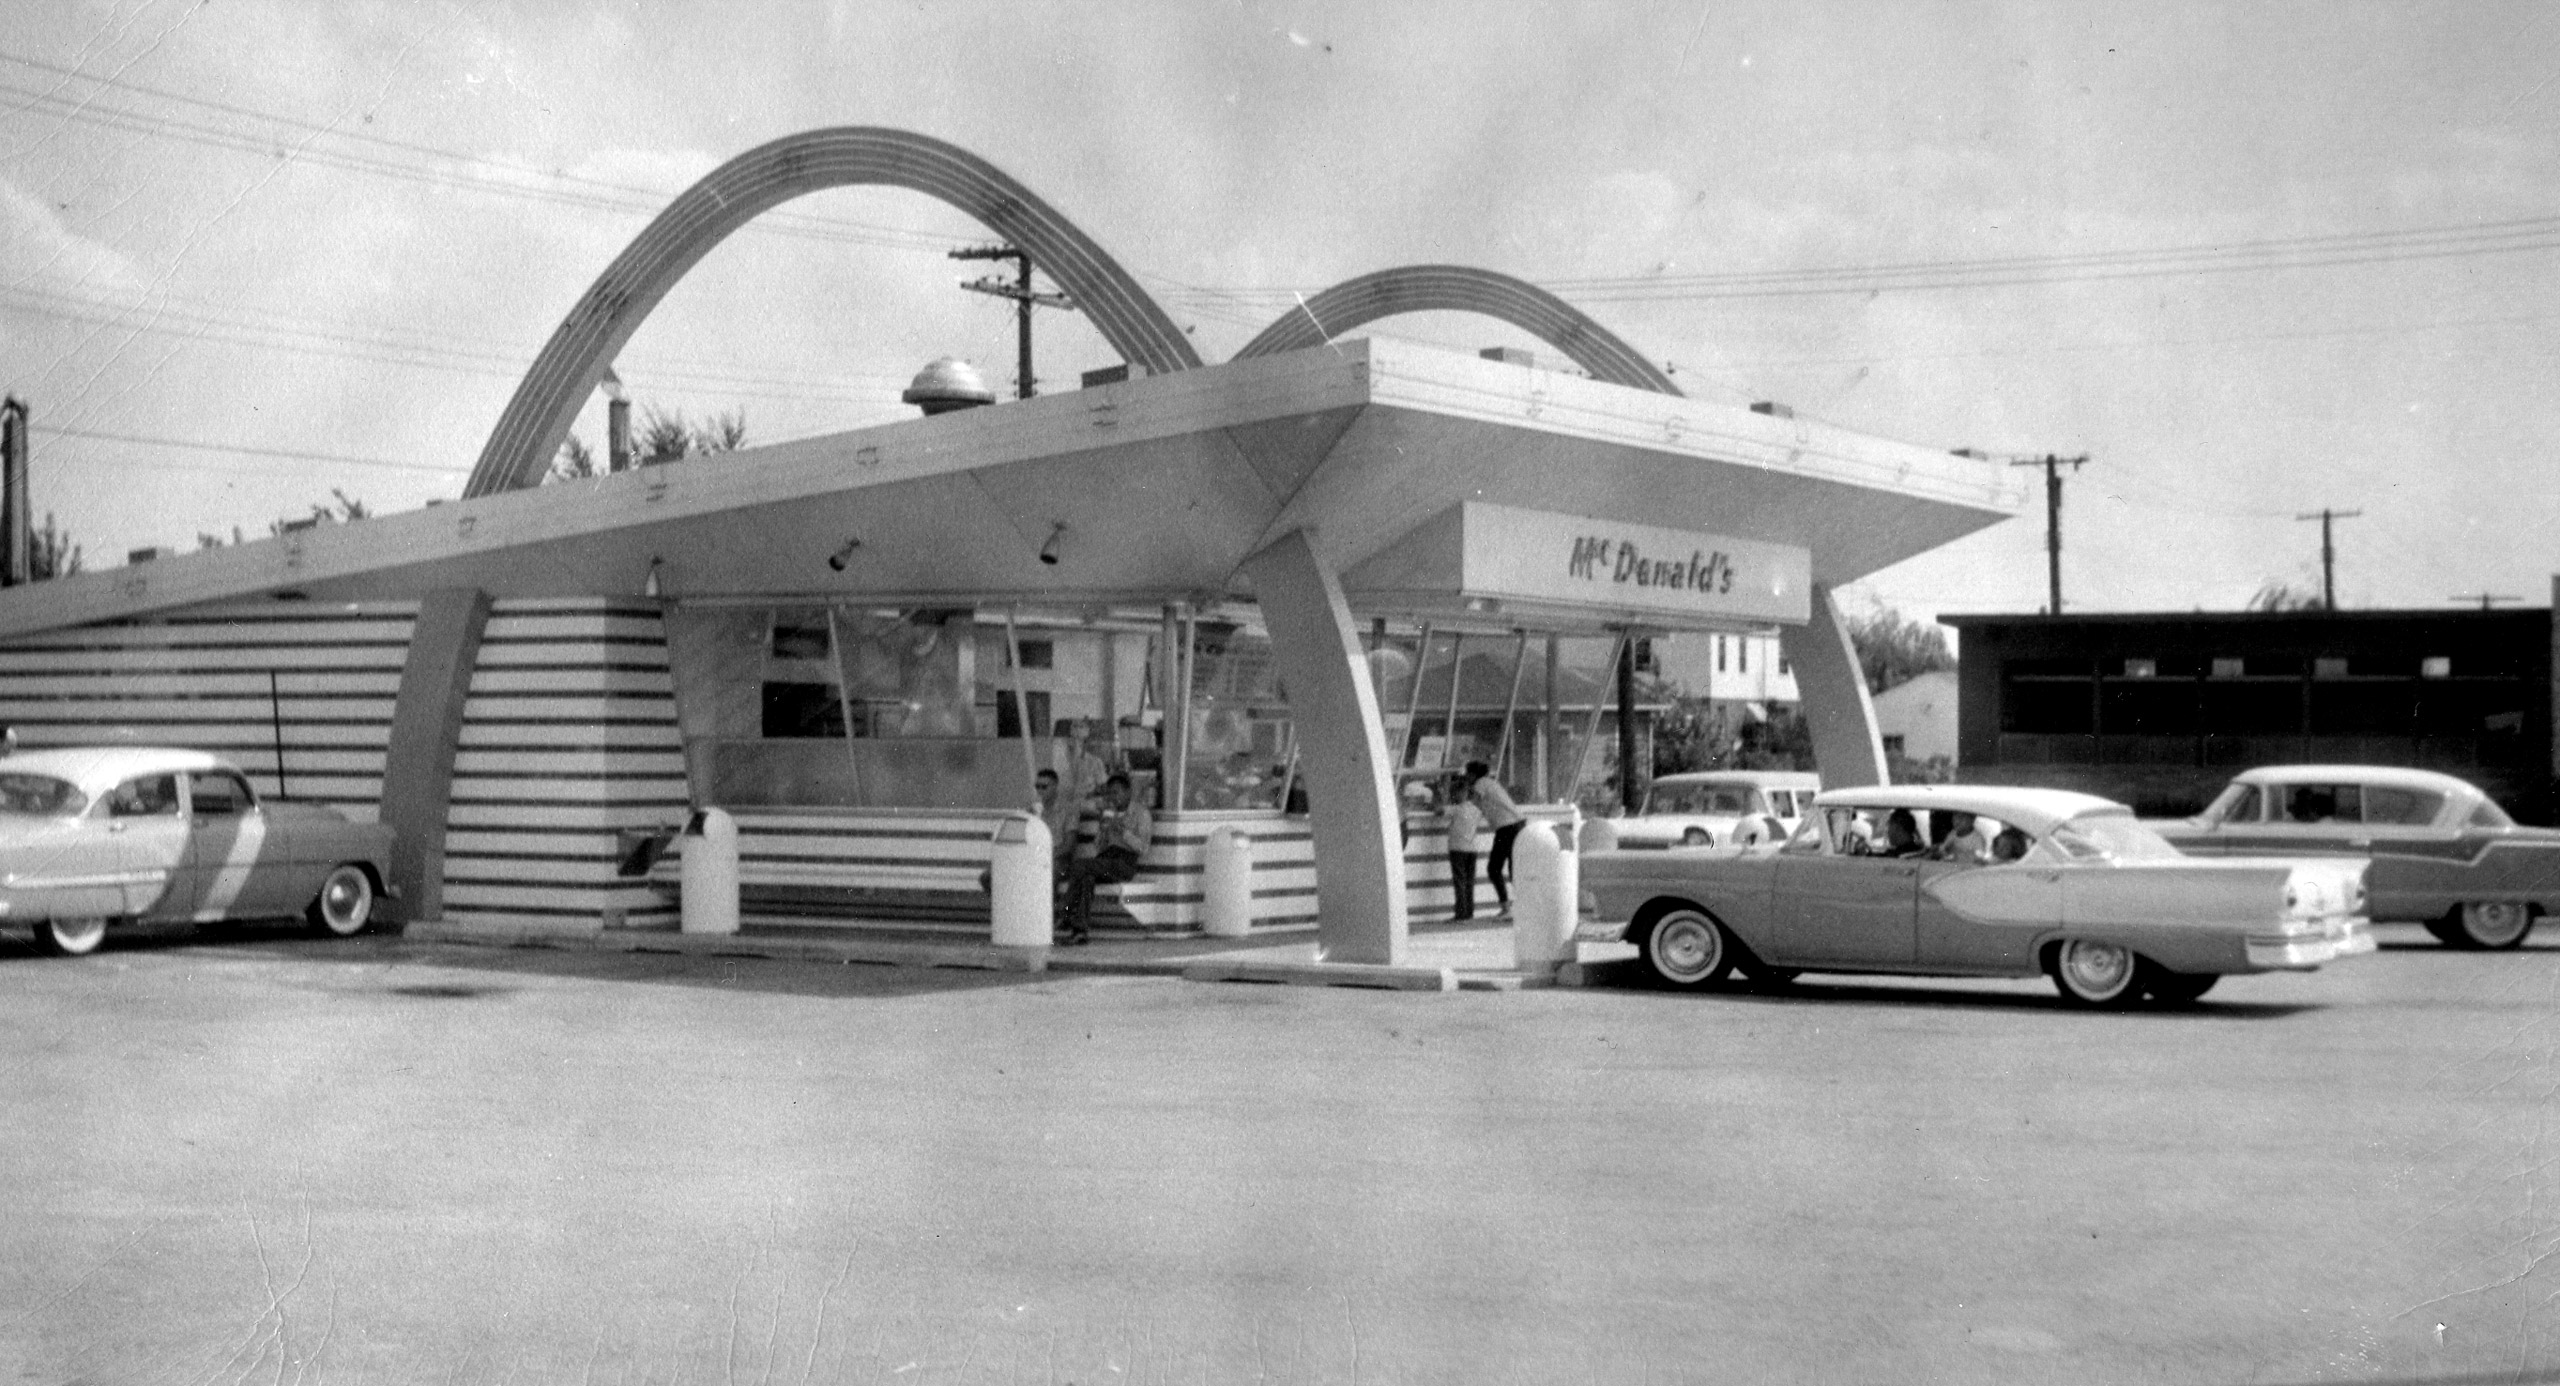 The first Indiana McDonald's opened in Hammond in 1956.